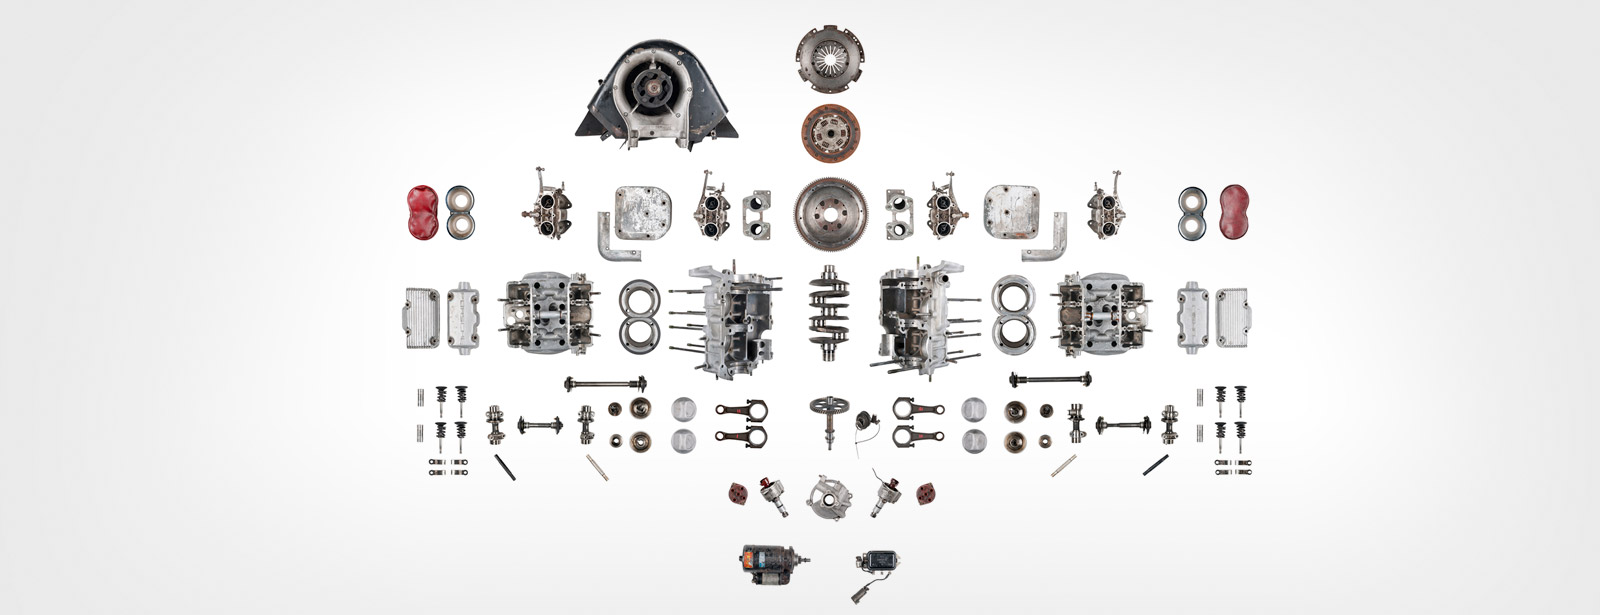 Porsche - Engine - Disassembly